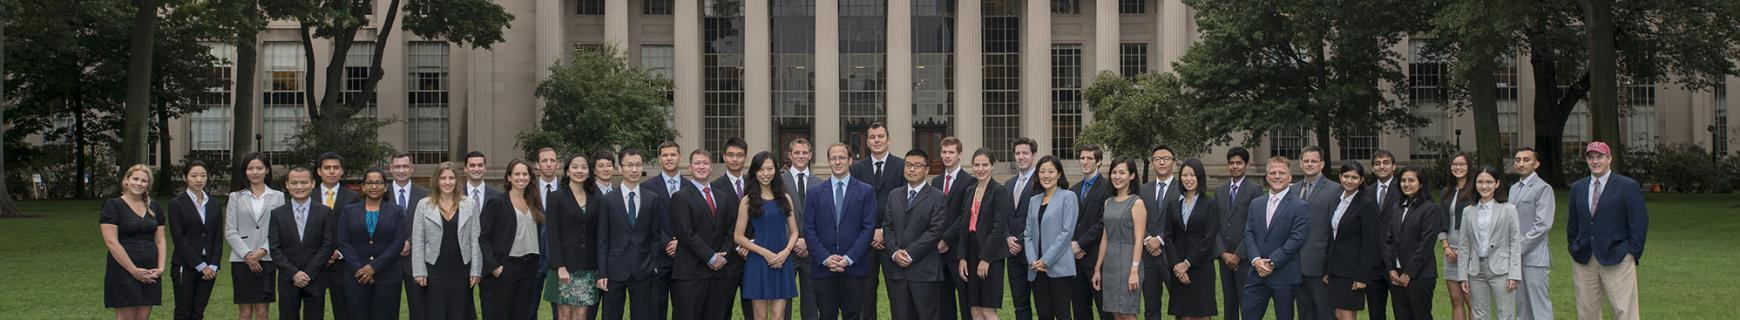 MIT Supply Chain Management Graduate Class 2016